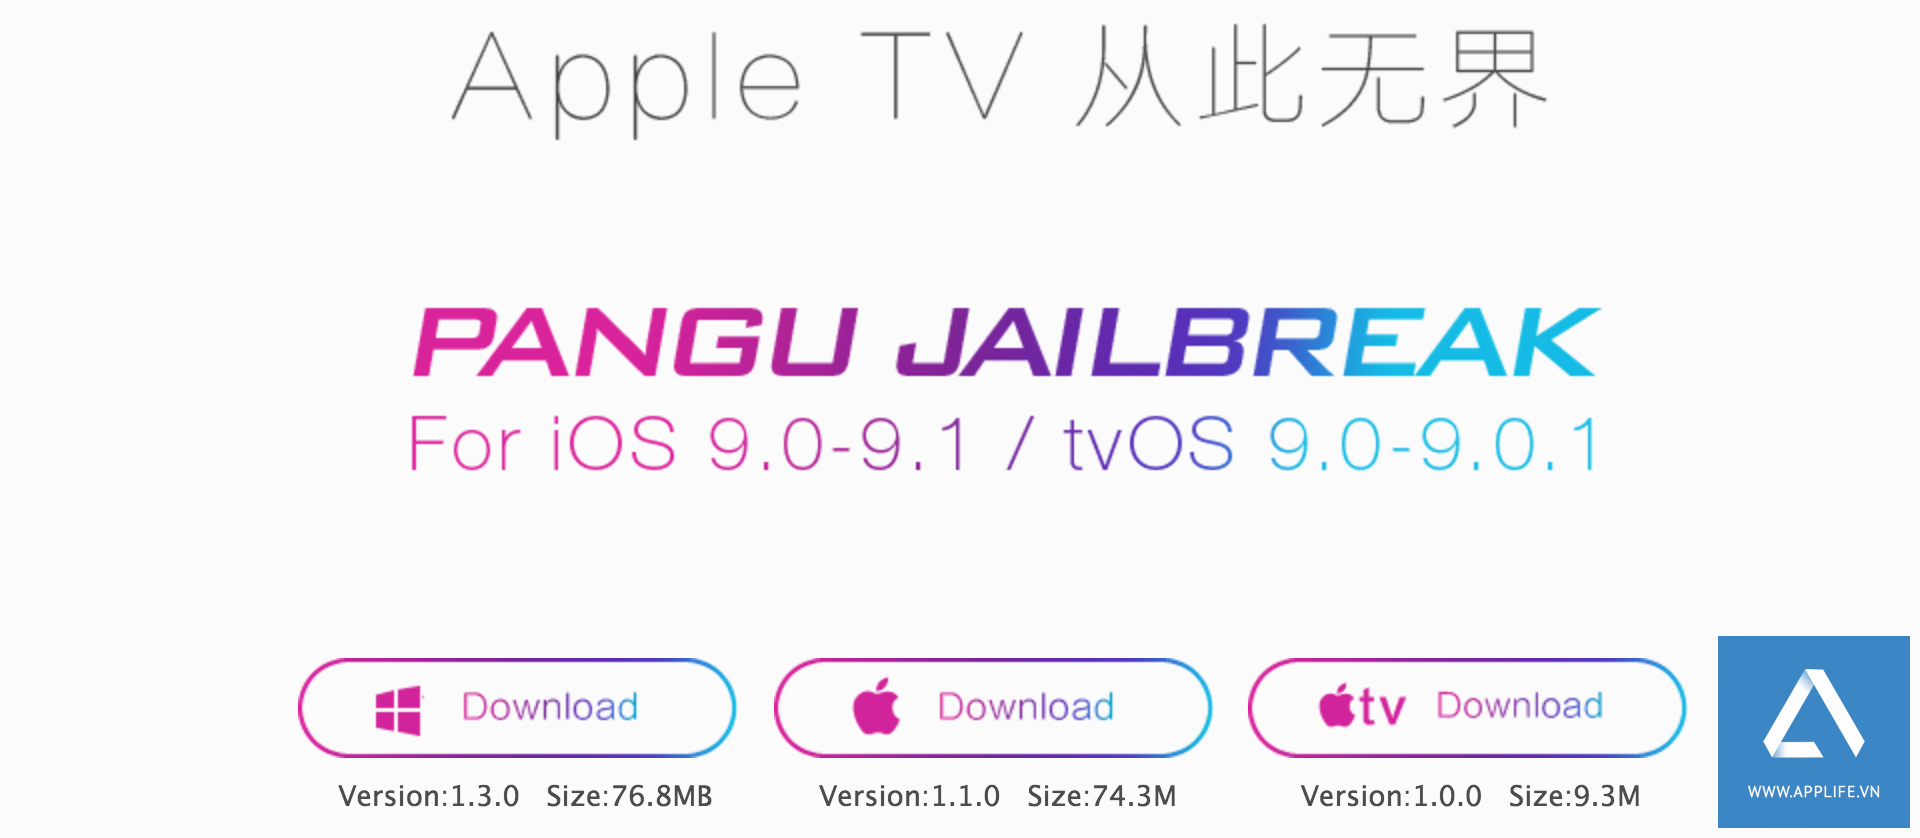 pangu-jailbreak-apple-tv-4